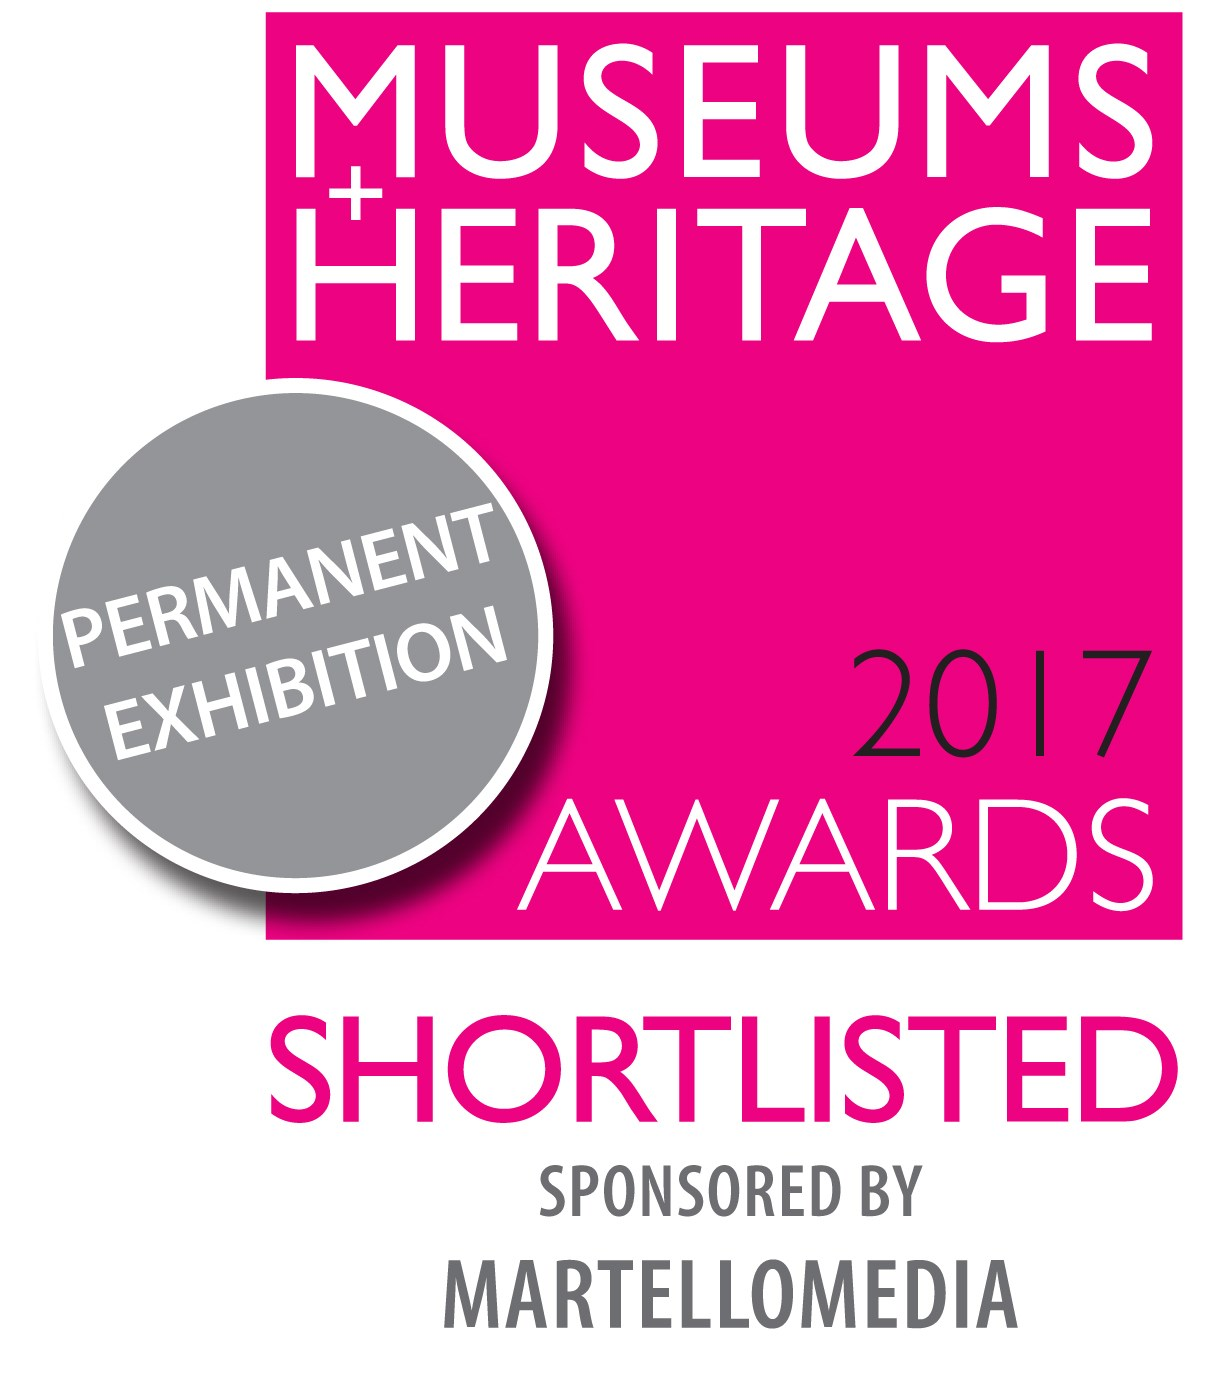 Shortlisted for the Museums + Heritage Permanent Exhibition award